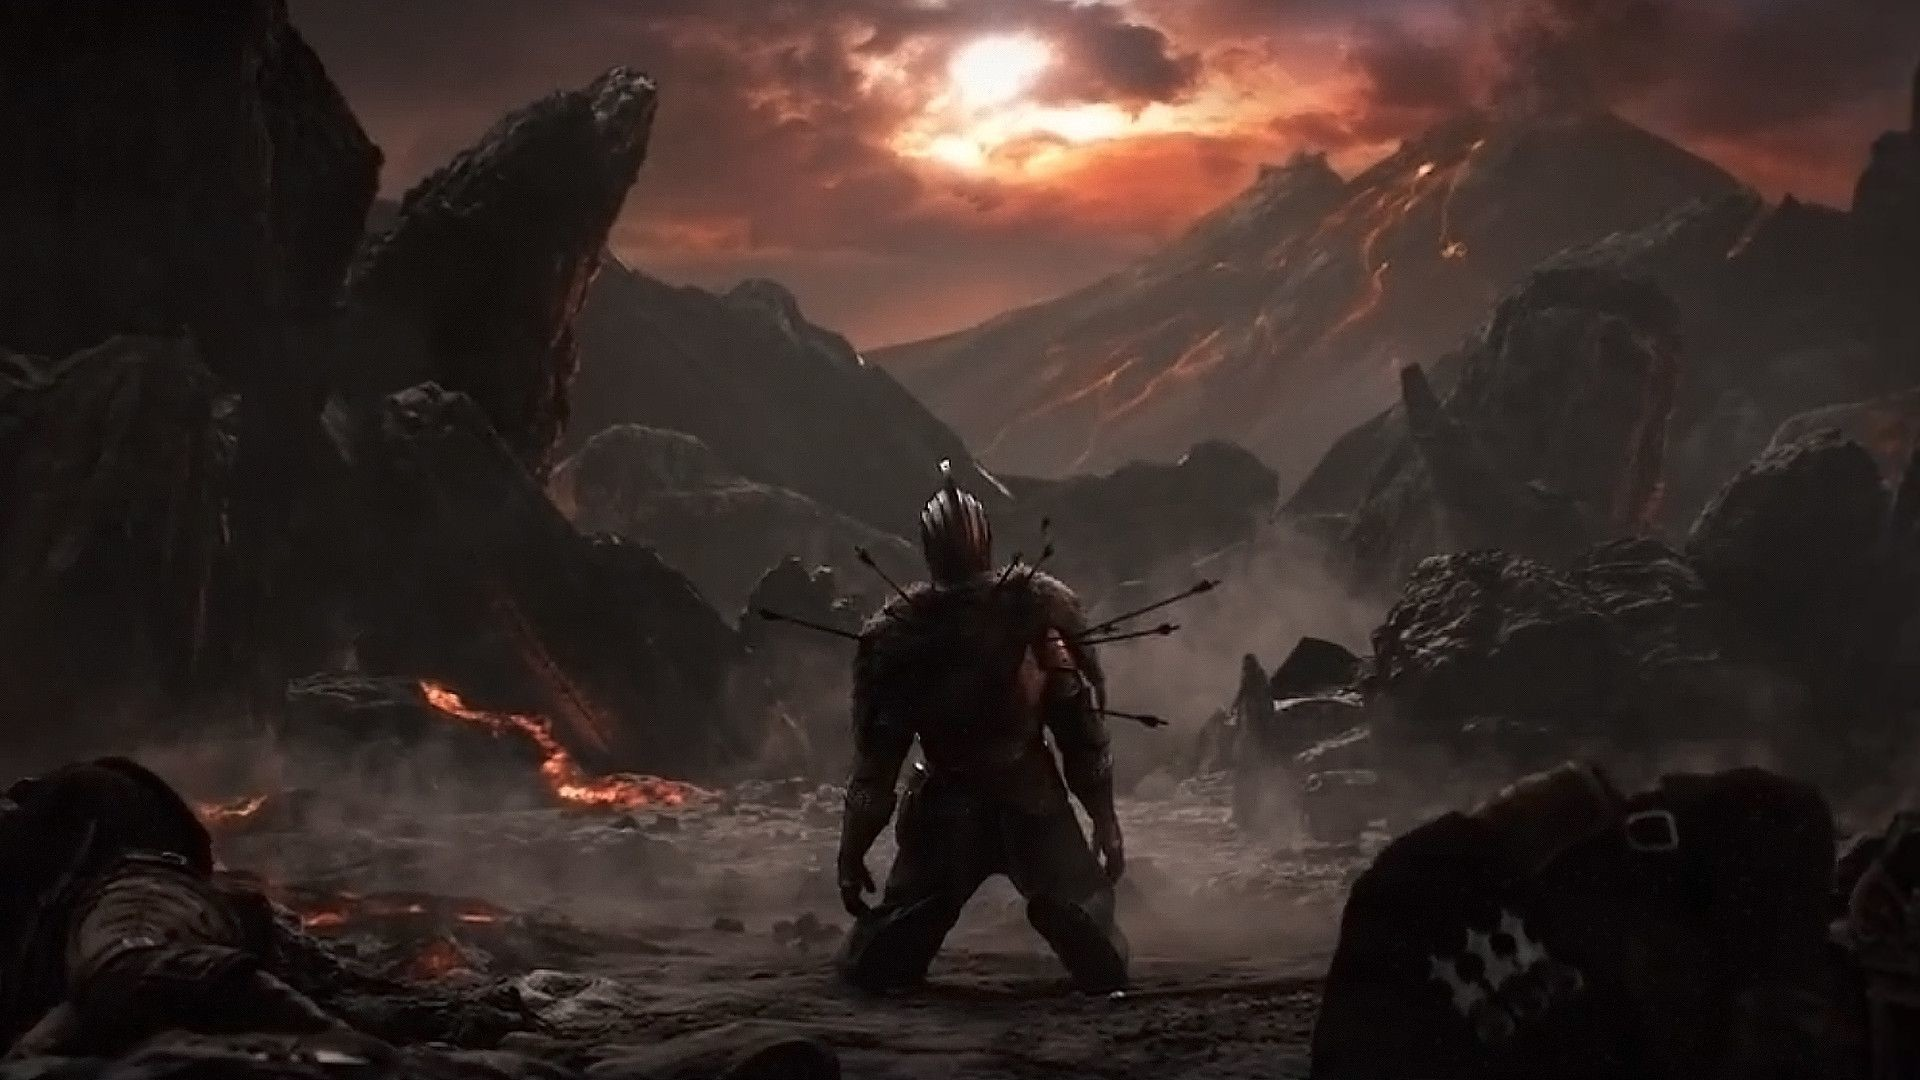 Holy mother of god this pixel art is amazing! : darksouls   Adorable  Wallpapers   Pinterest   Dark souls, Wallpaper and Animation